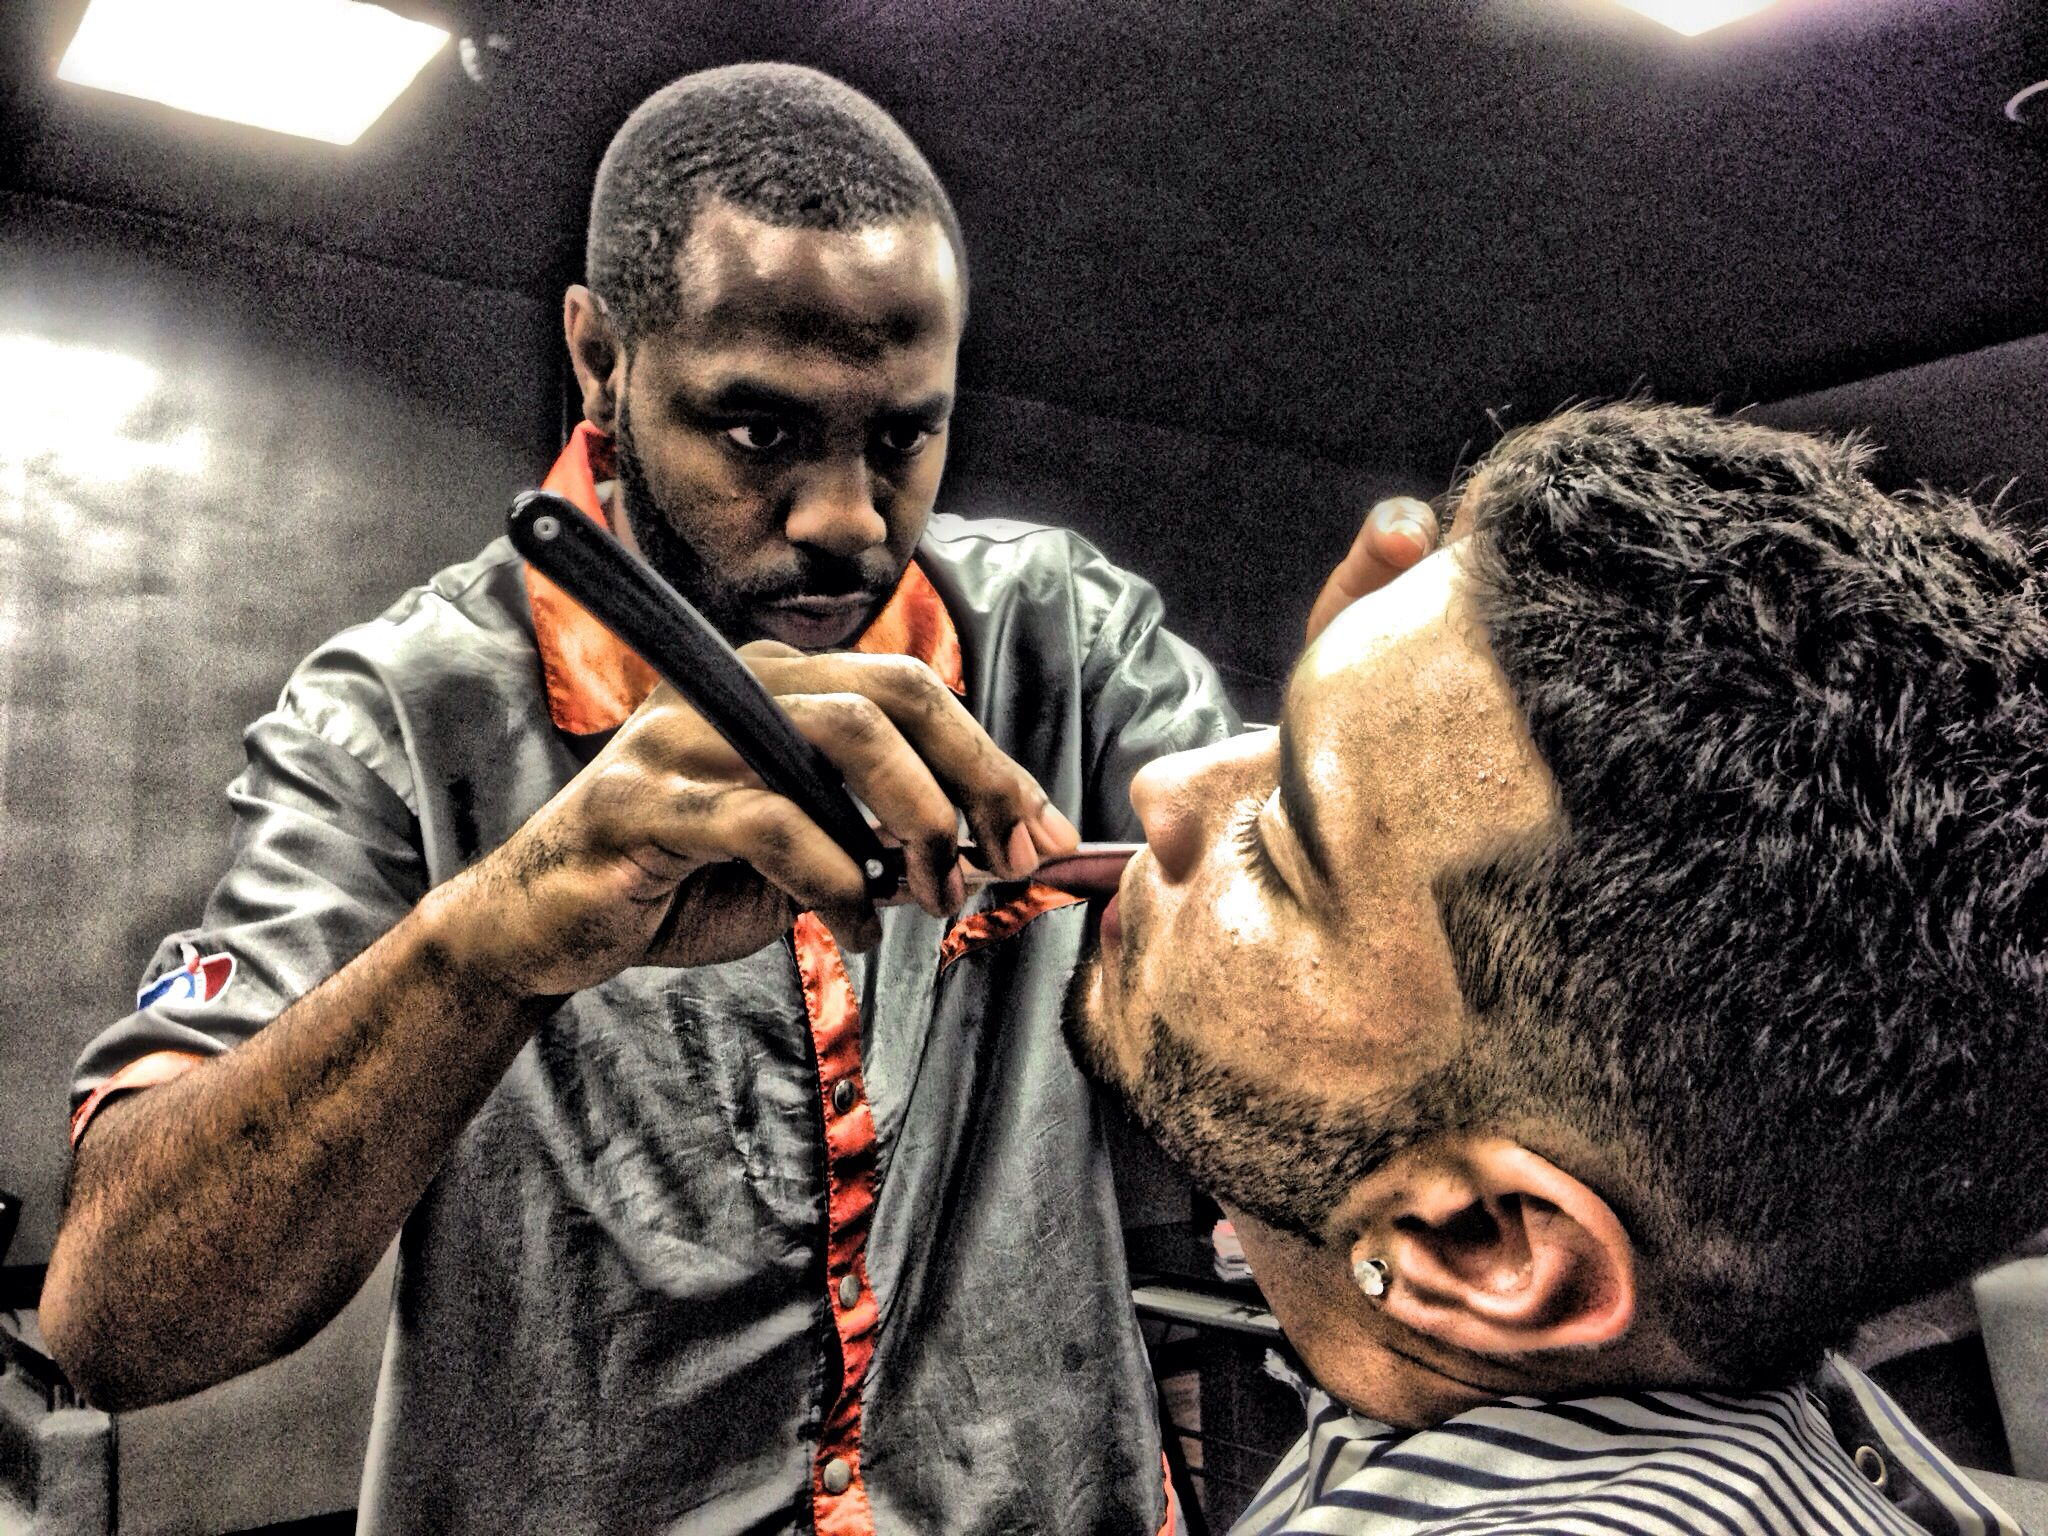 Bespoke BarberShop A cut of Excellence 419 North Ave New Rochelle